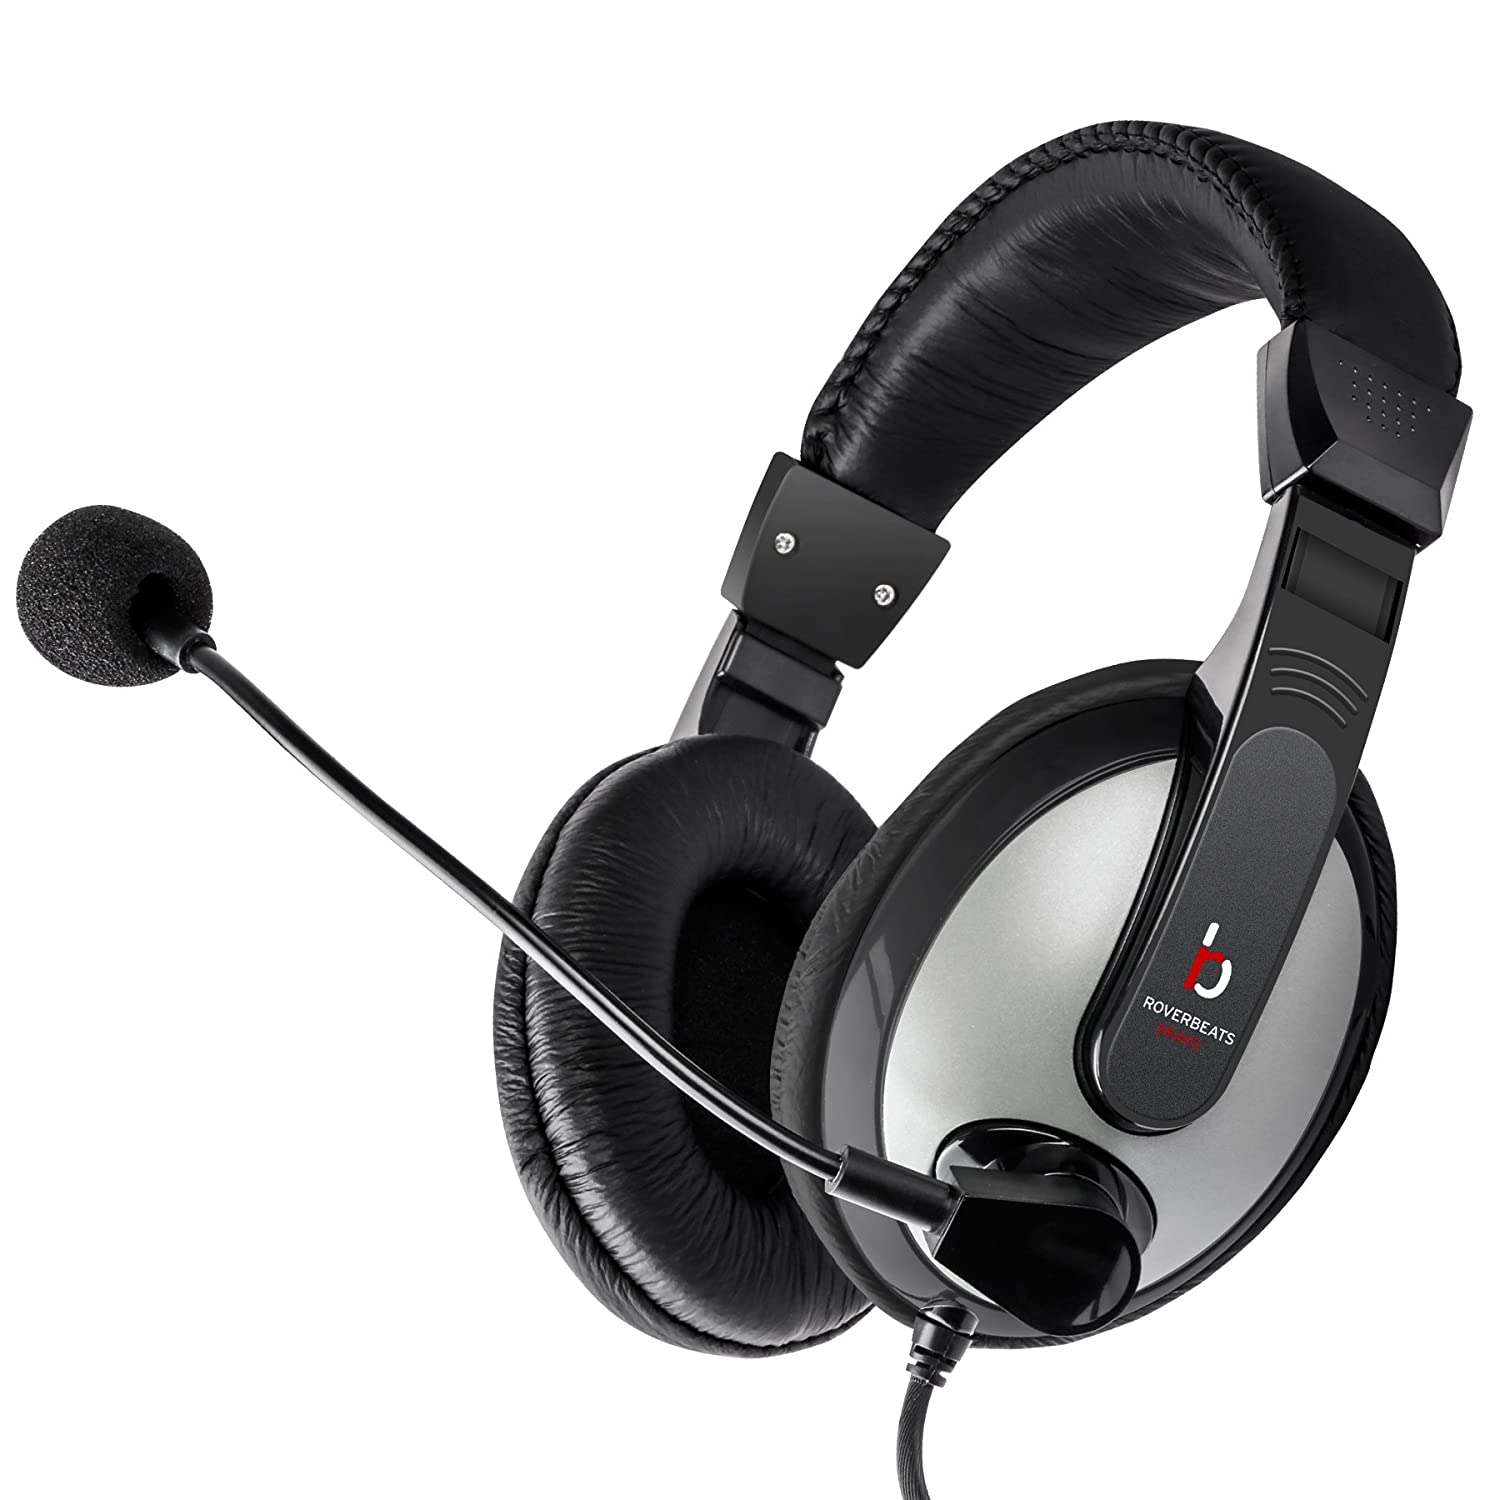 Etekcity RoverBeats Bravo Professional Over Ear Stereo Headset with Microphone, Headset Splitter, BlackGray